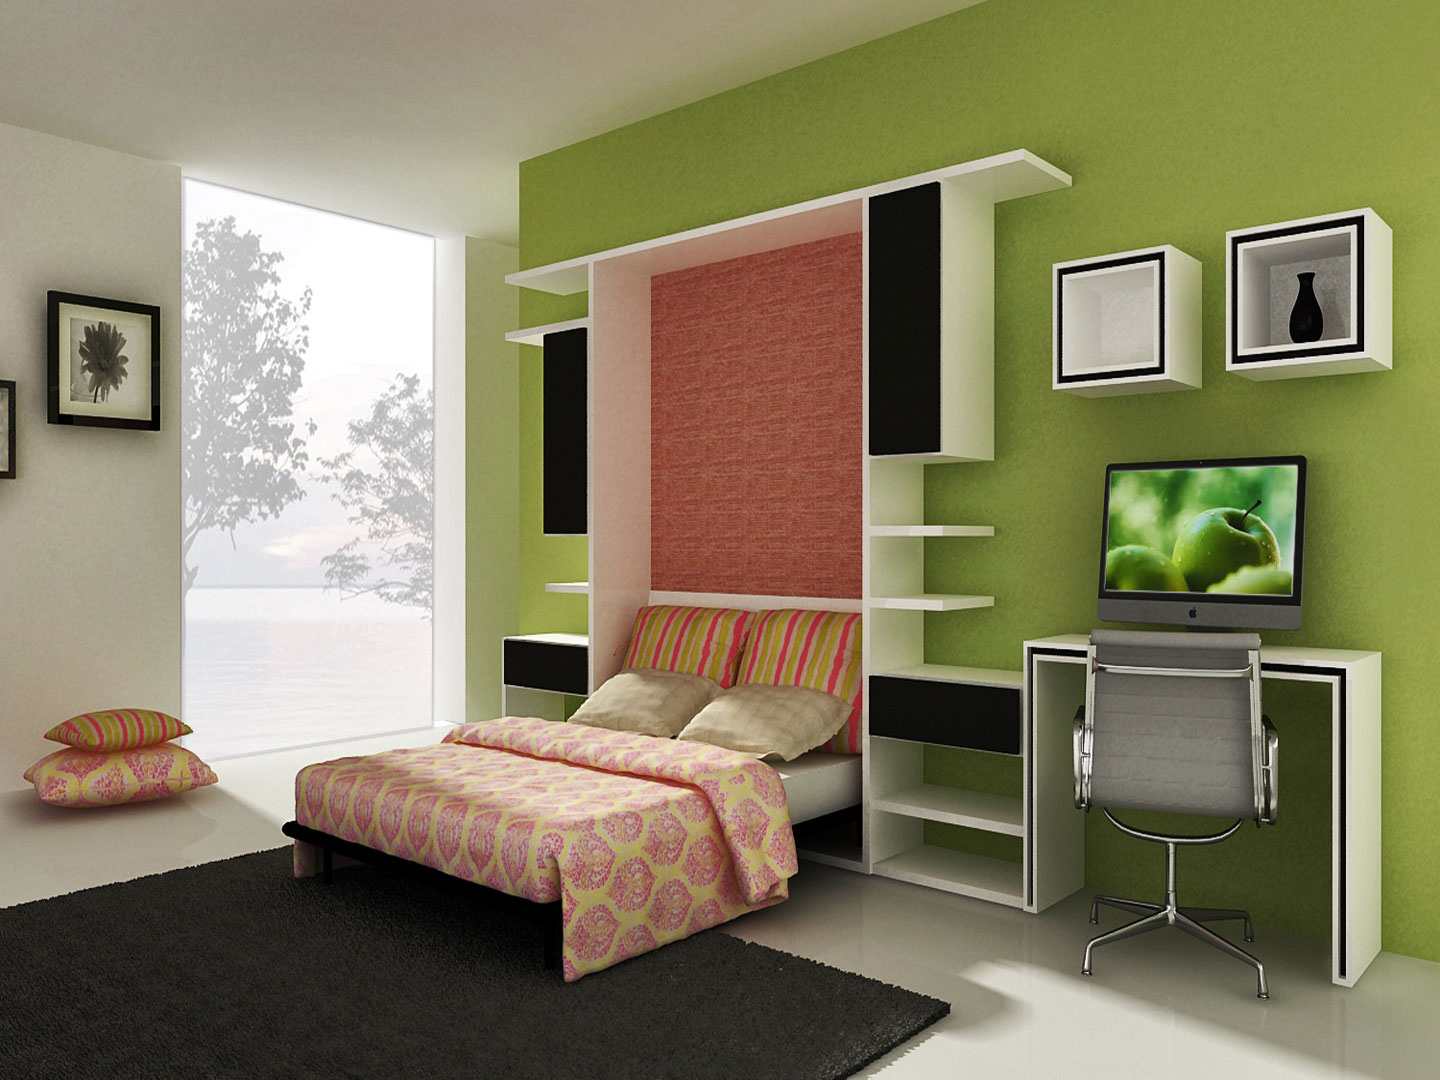 Wall Bed 29